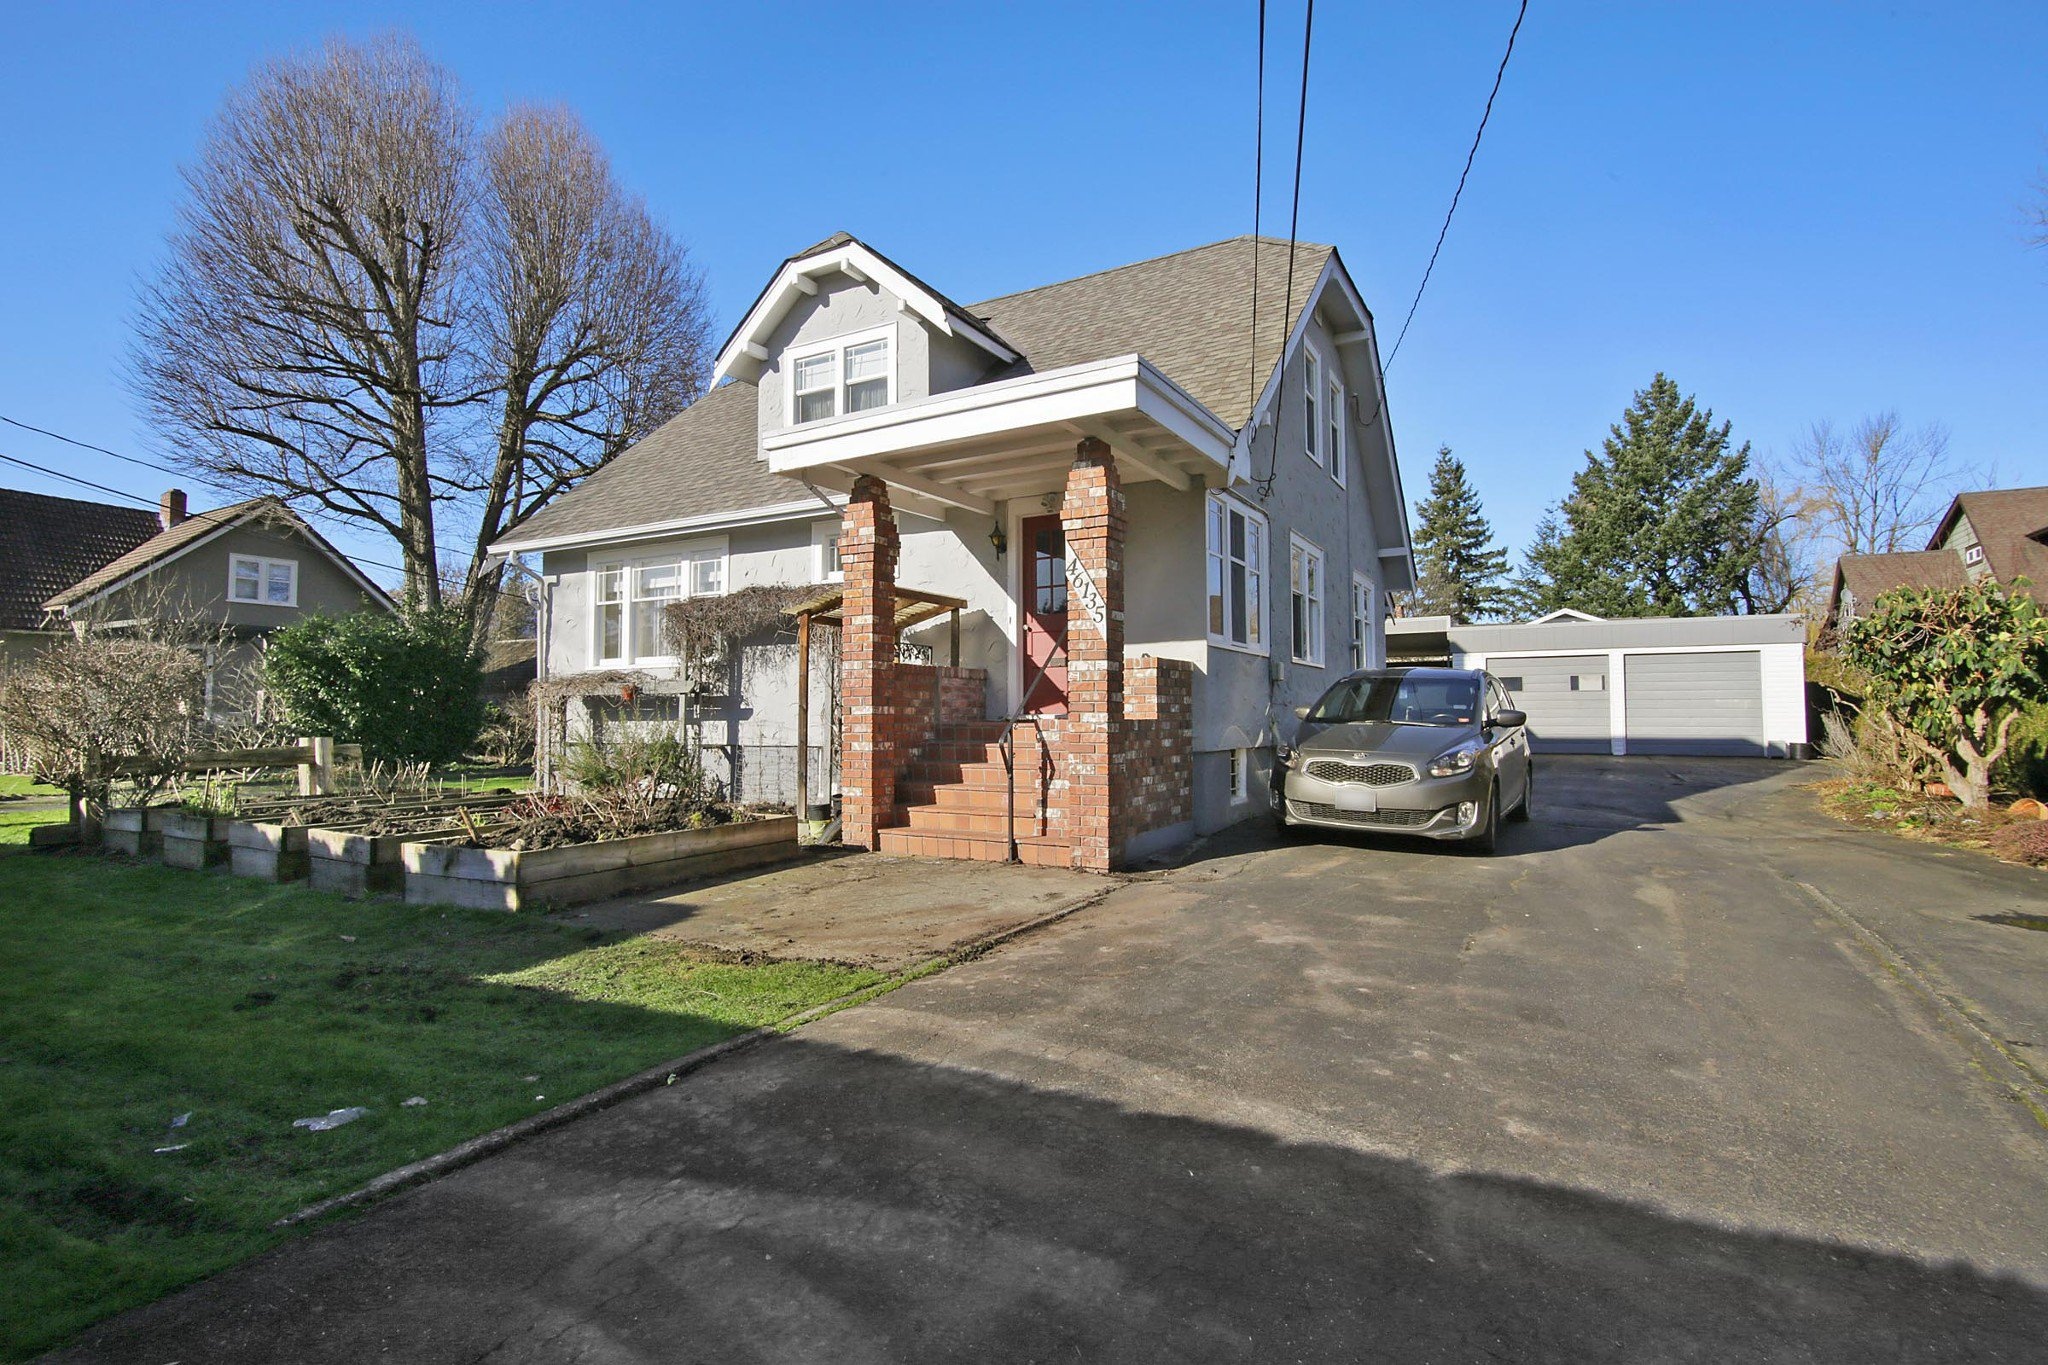 Main Photo: 46135 RIVERSIDE Drive in Chilliwack: Chilliwack N Yale-Well House for sale : MLS®# R2437294